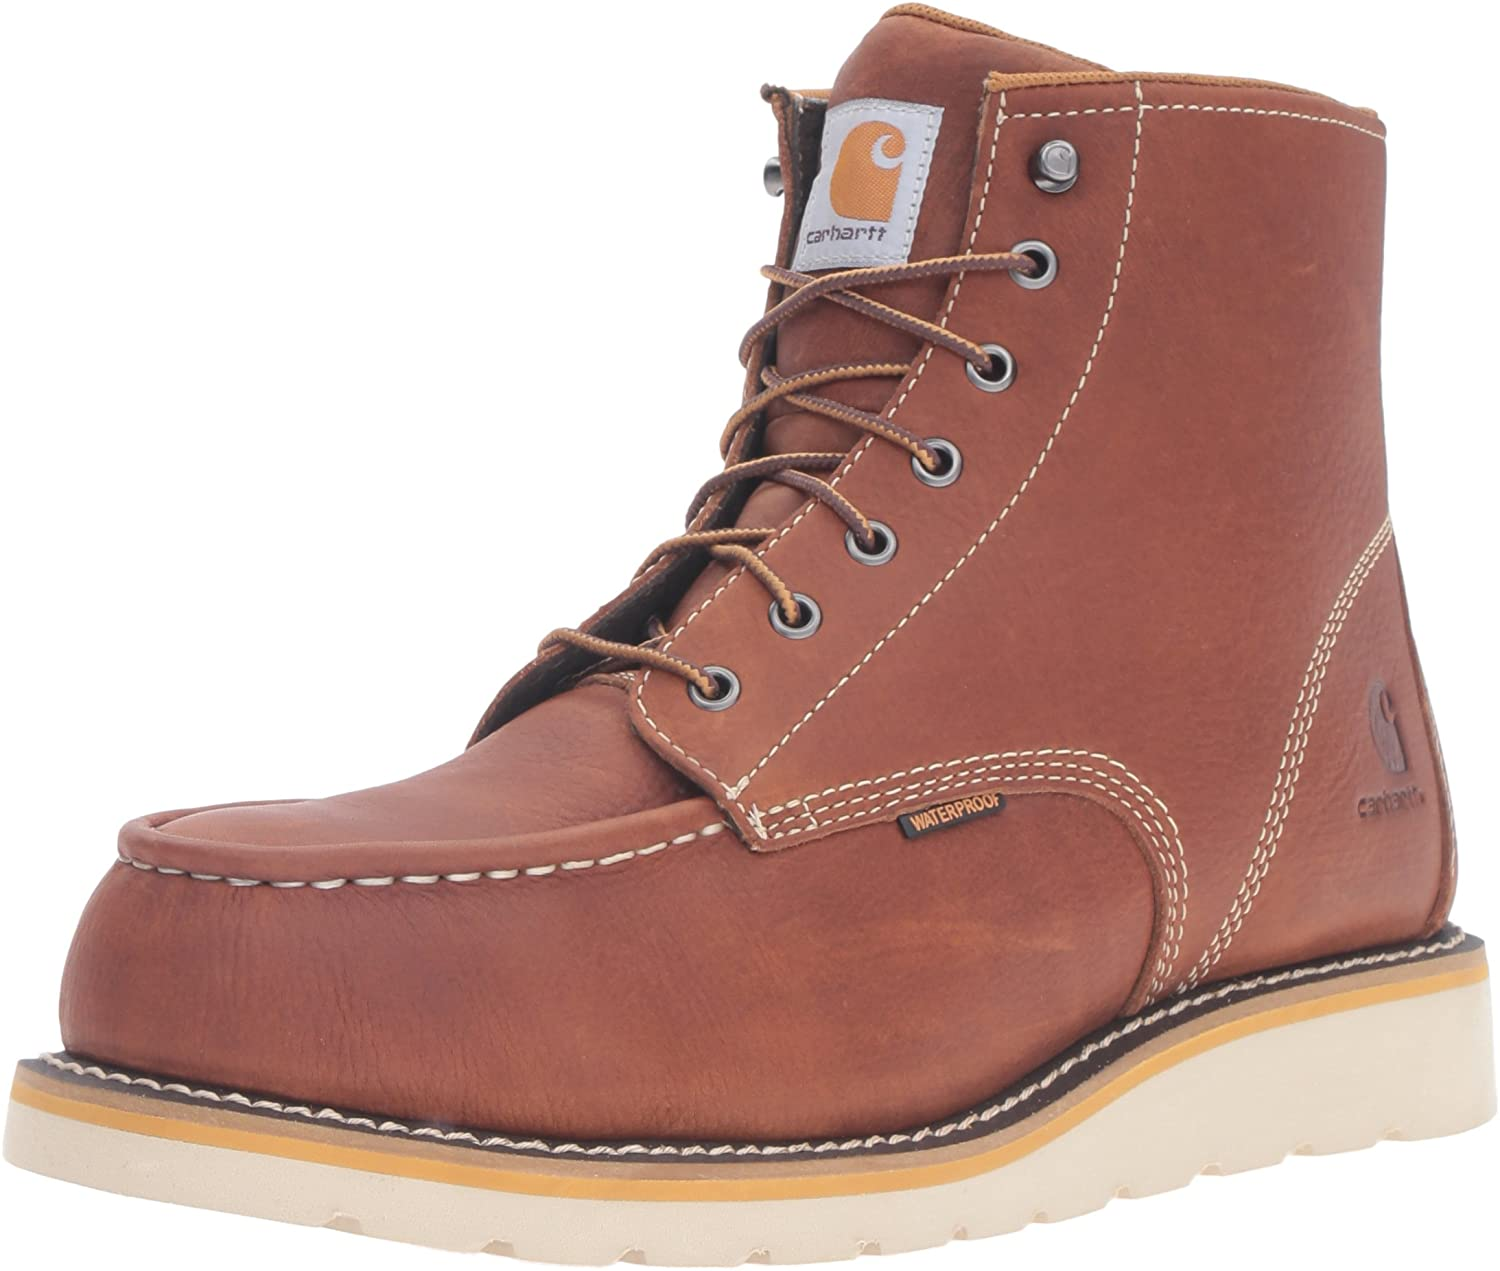 1950s Men's Shoes | Boots, Greaser, Rockabilly Carhartt Mens 6 Inch Waterproof Wedge Steel Toe Work Boot $270.88 AT vintagedancer.com